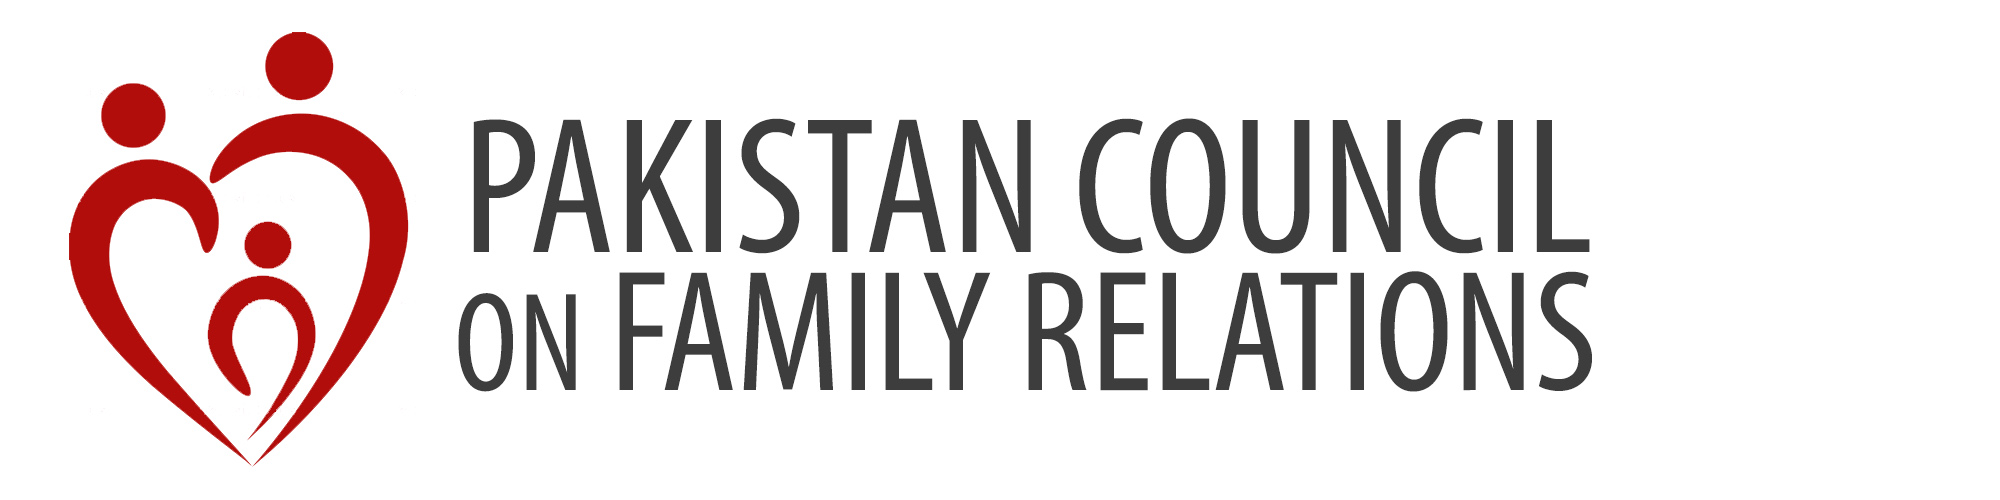 Pakistan Council On Family Relations